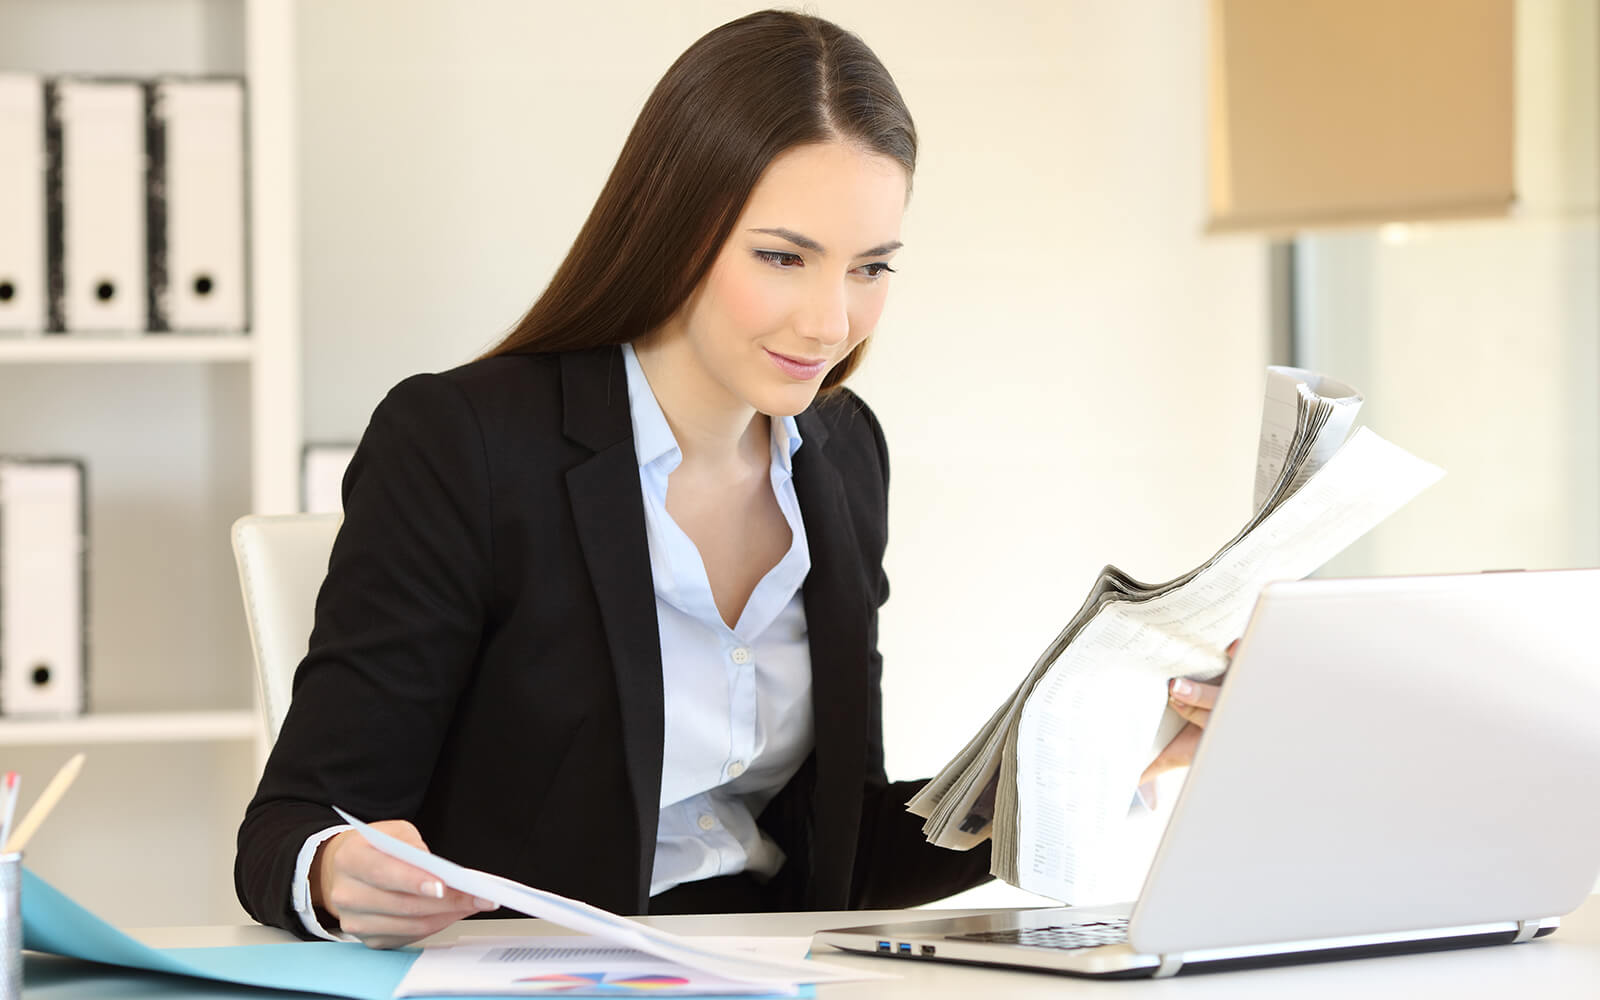 A female looking at paper